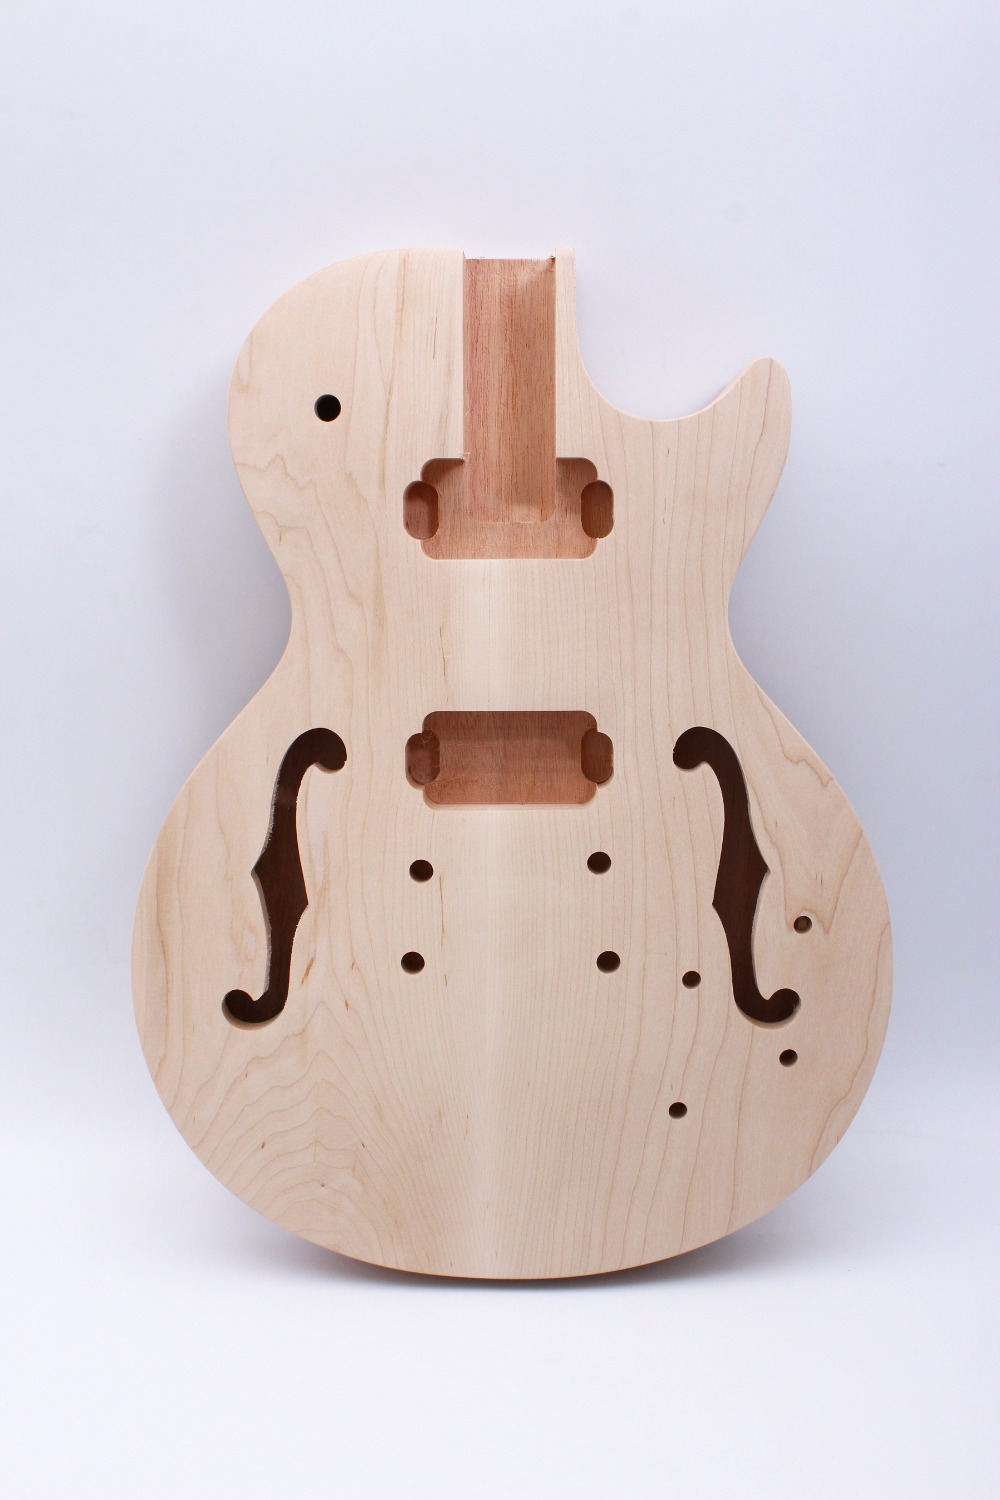 Yinfente LP Electric guitar body Unfinished Mahogany One-piece wood Made Bolt On high quality custom shop lp jazz hollow body electric guitar vibrato system rosewood fingerboard mahogany body guitar